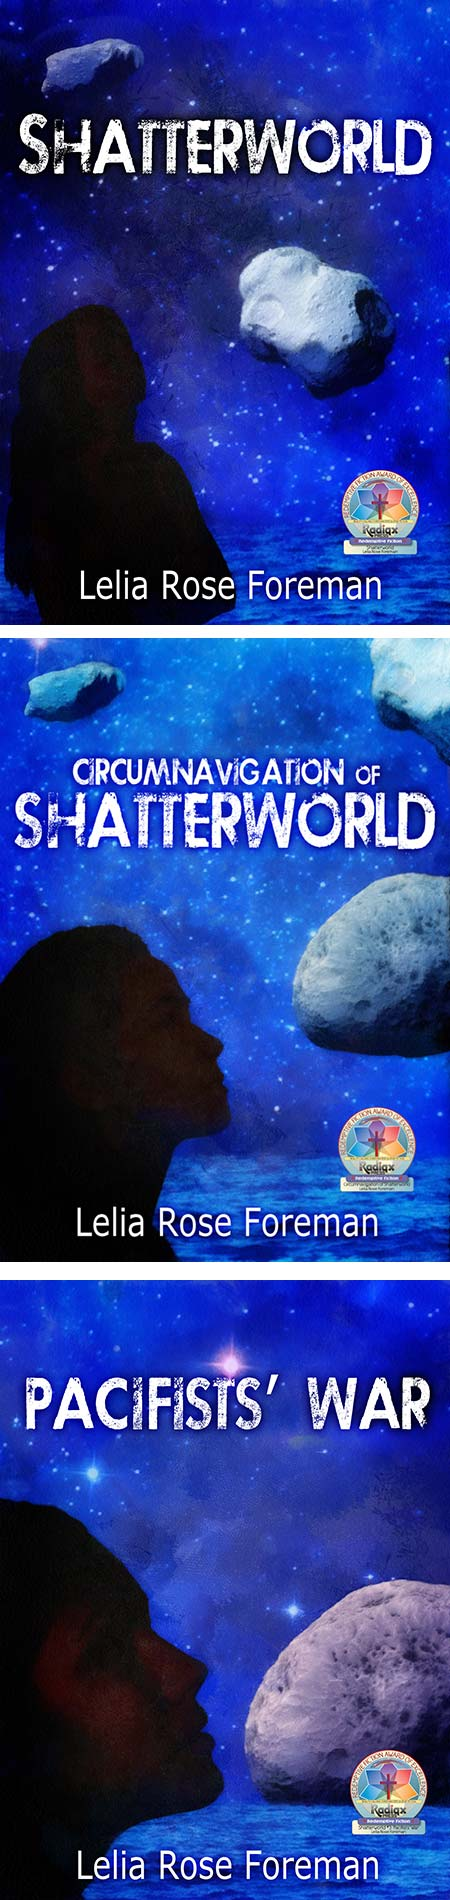 The Shatterworld Trilogy